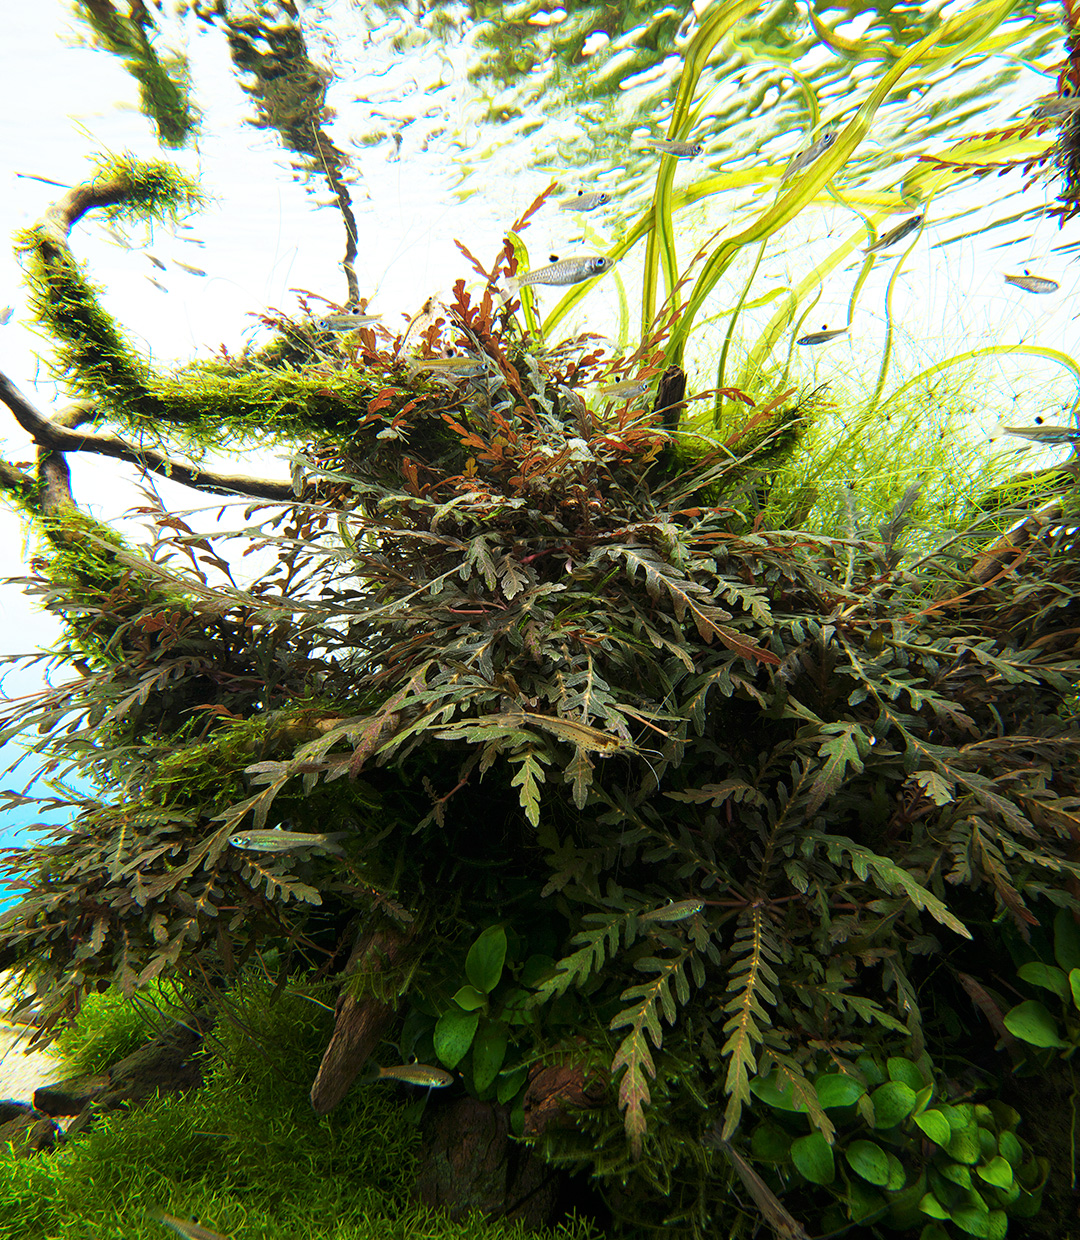 NATURE IN THE GLASS 'On the Breezy Side'